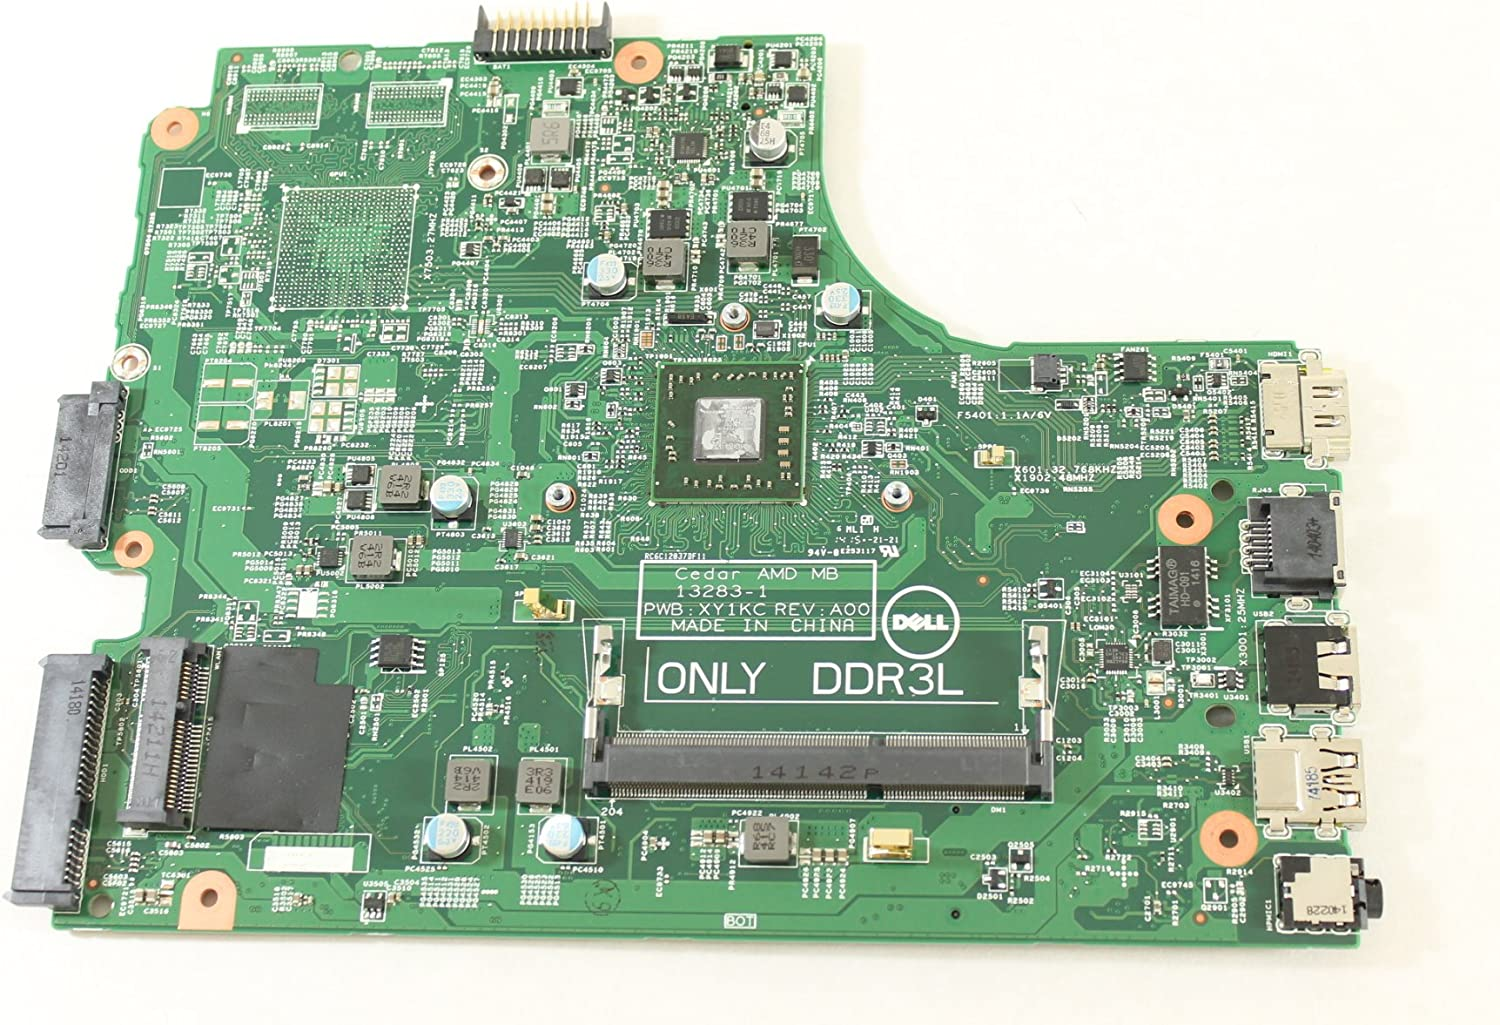 Dell Motherboard AMD A4-6210 1.8 GHz 3F7WK Inspiron 3541